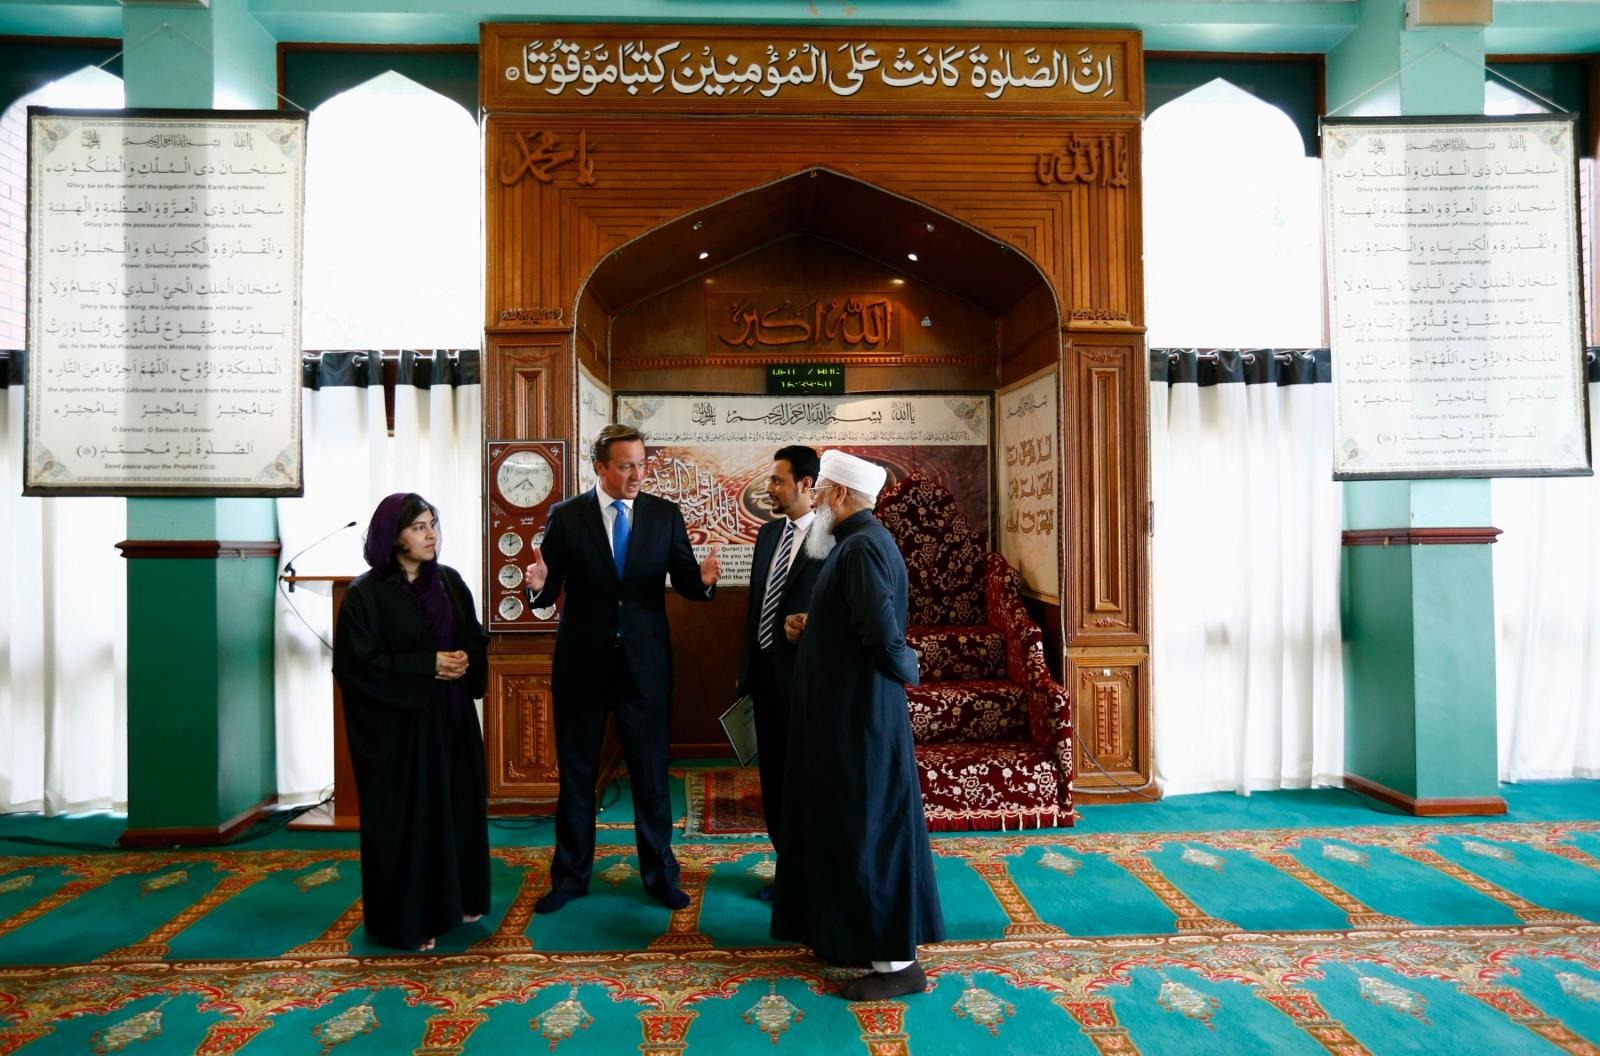 David Cameron at Jamia Mosque